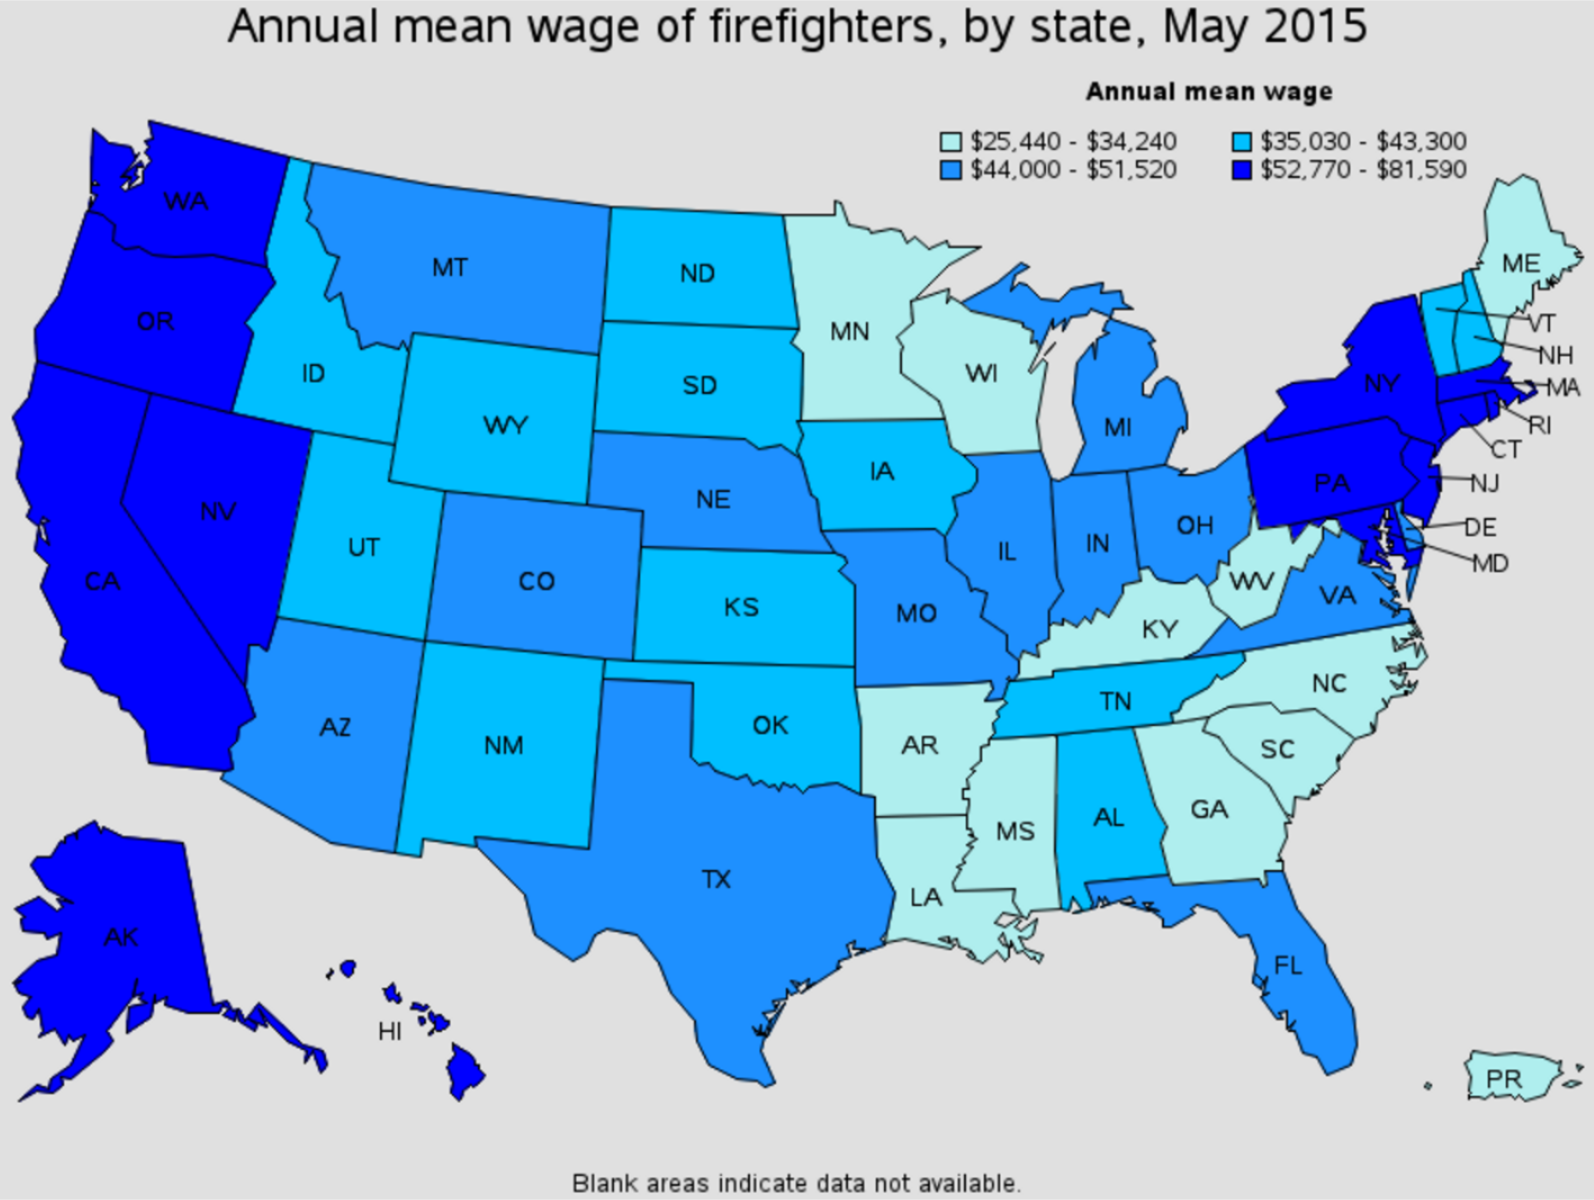 firefighter average salary by state Wickenburg Arizona